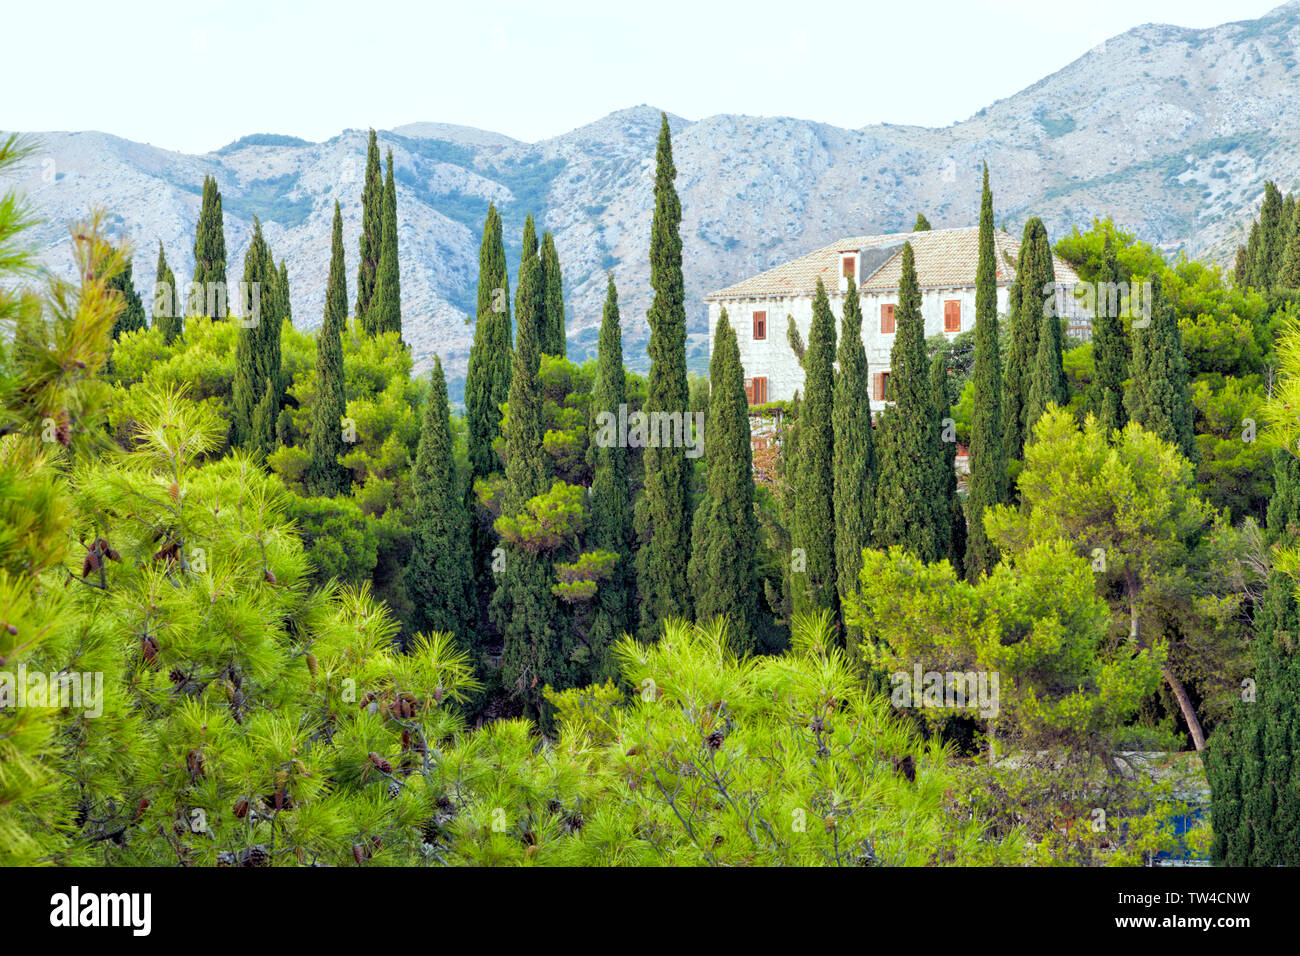 Old country villa on a hill in Croatia, surrounded by cypress and pine trees, with mountains in the background, lush summer landscape . Stock Photo